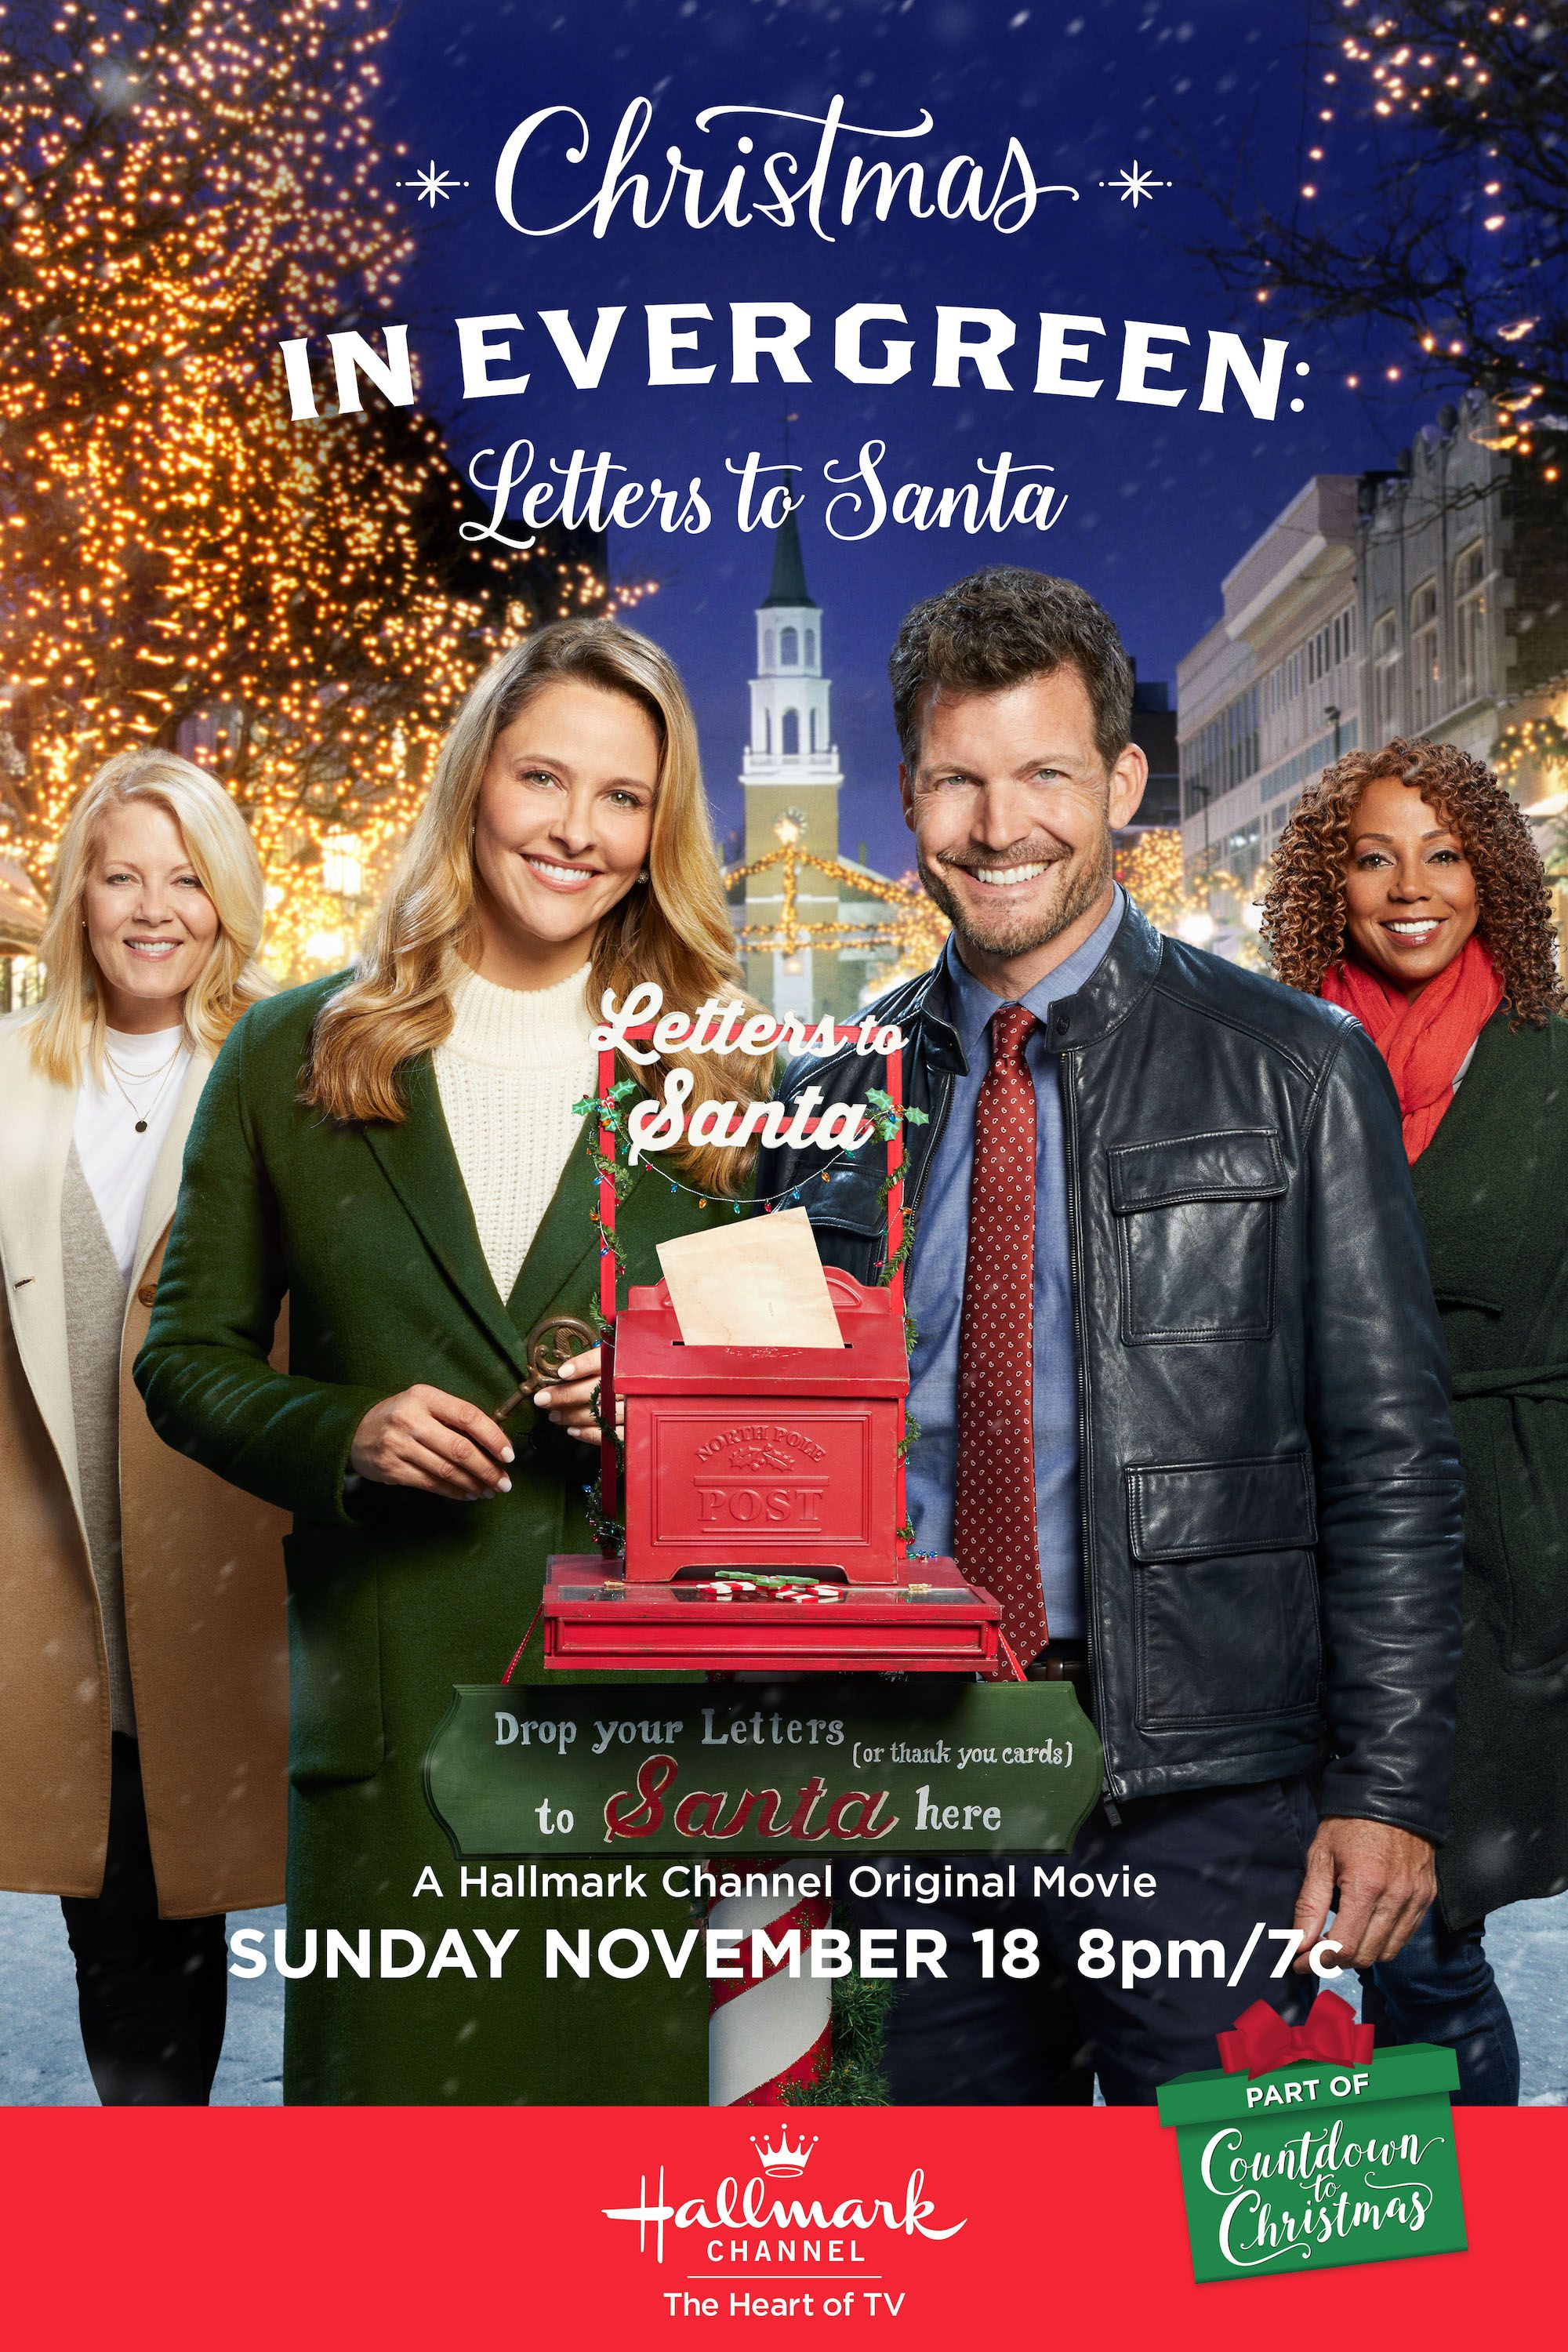 Christmas In Evergreen Letters To Santa Stars Jill Wagner And Holly Robinson Pe Hallmark Channel Christmas Movies Christmas Movies Hallmark Christmas Movies